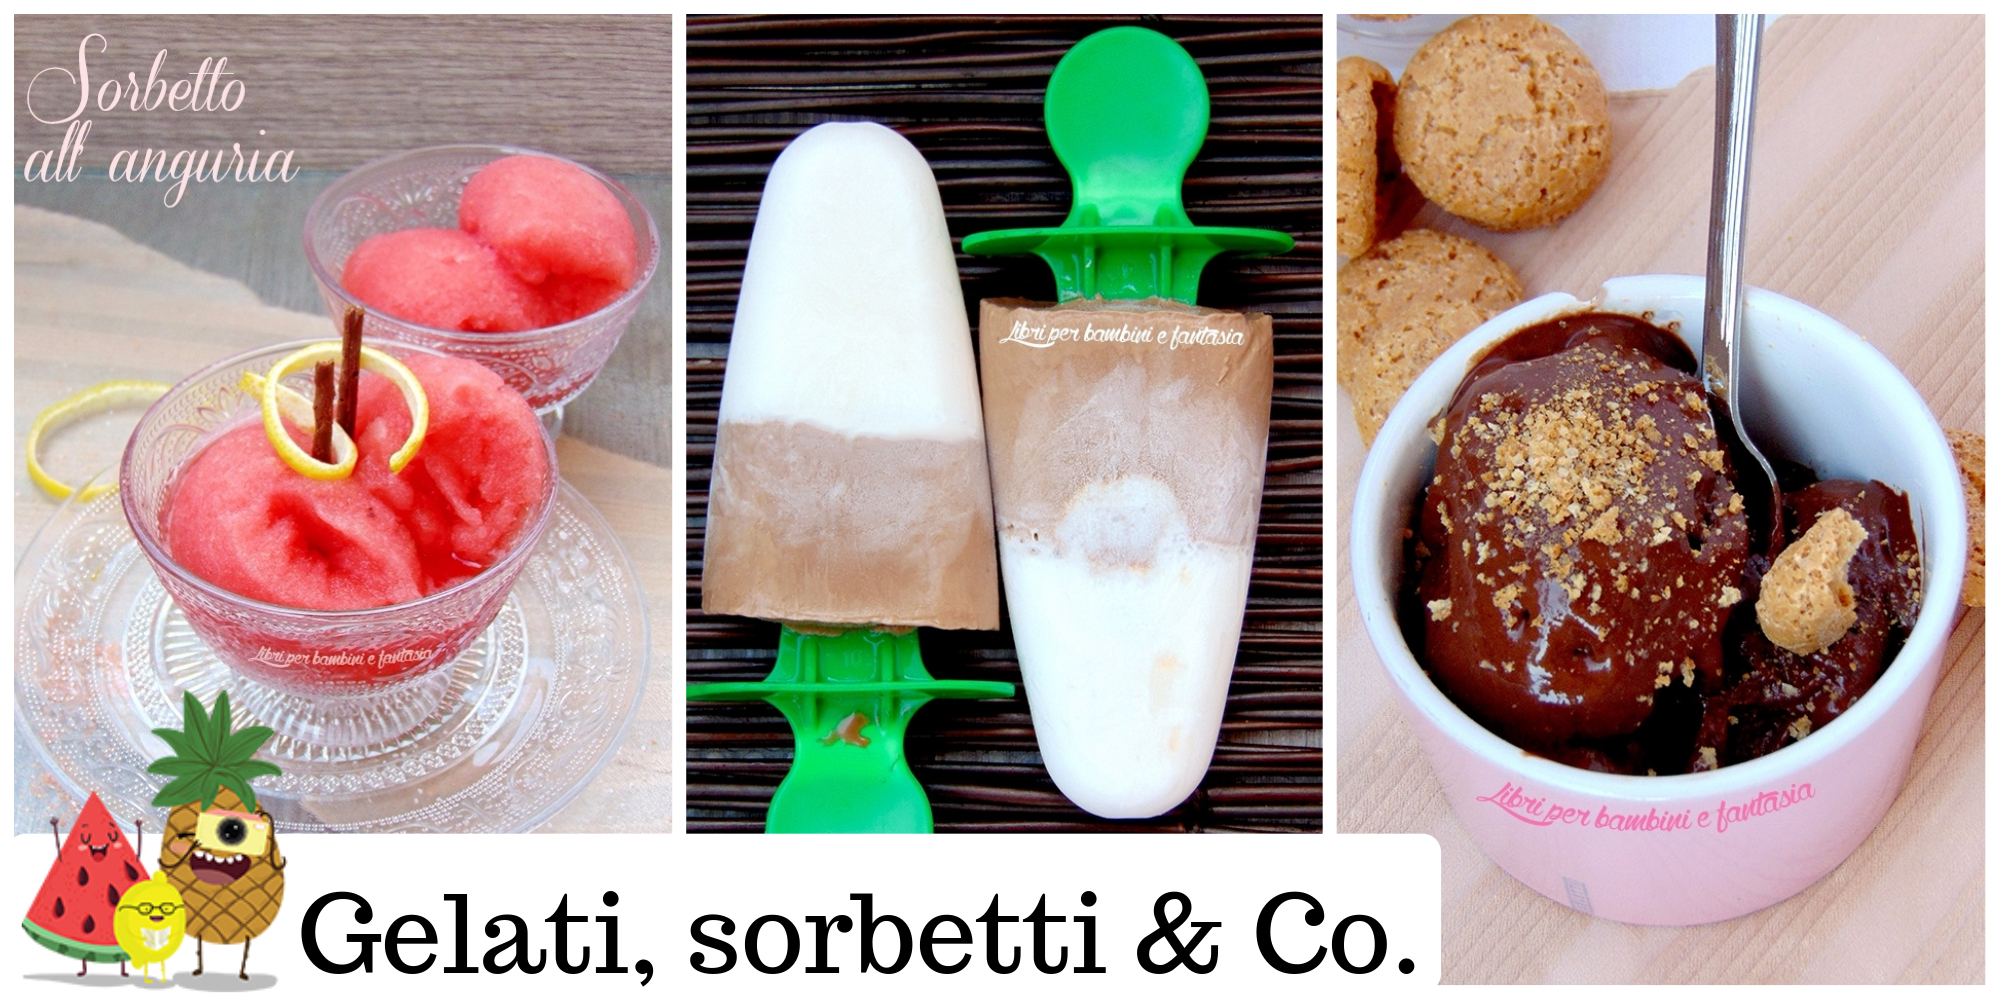 Gelati, sorbetti & Co.